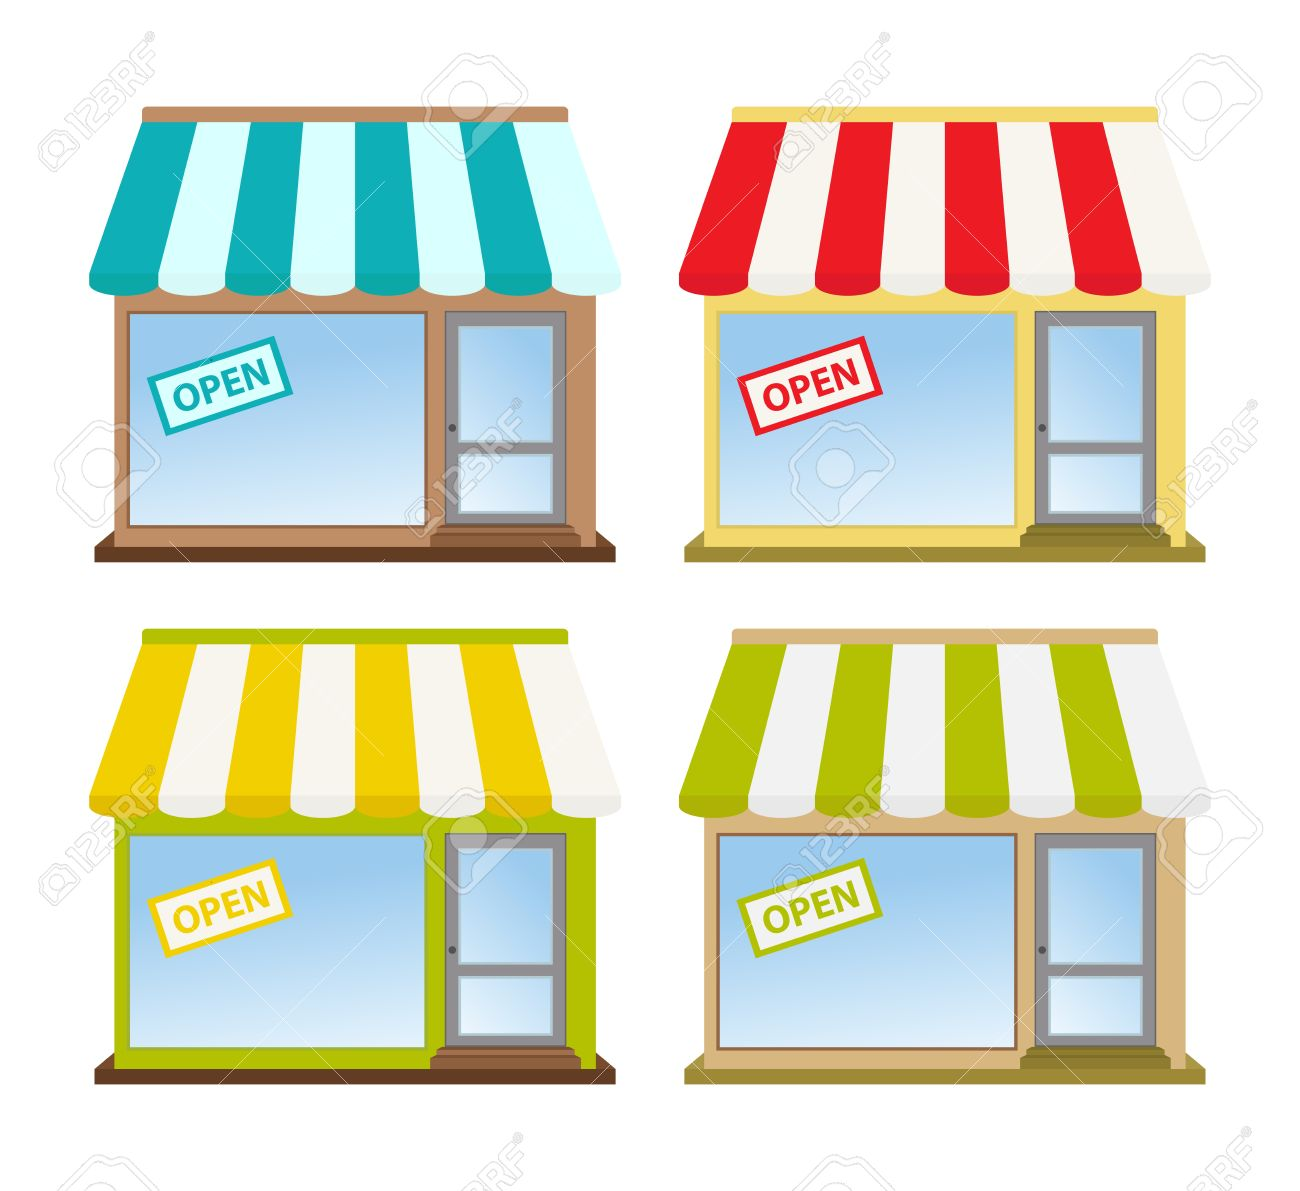 Shop window clipart - Clipground